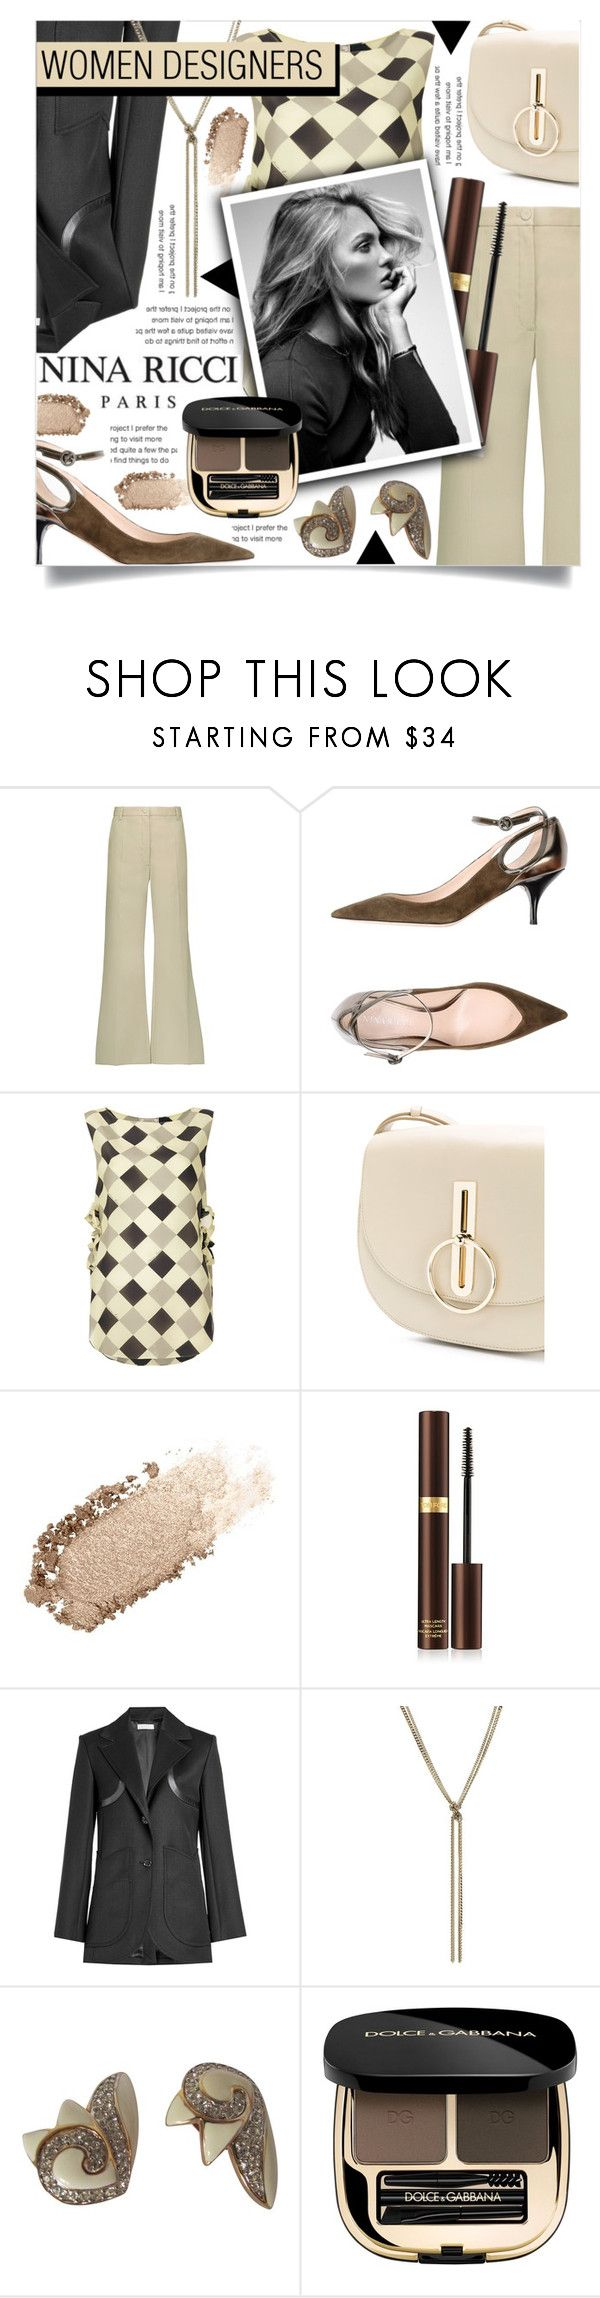 """NINA RICCI"" by celine-diaz-1 ❤ liked on Polyvore featuring Nina Ricci, Chantecaille, Tom Ford, PUR and Dolce&Gabbana"